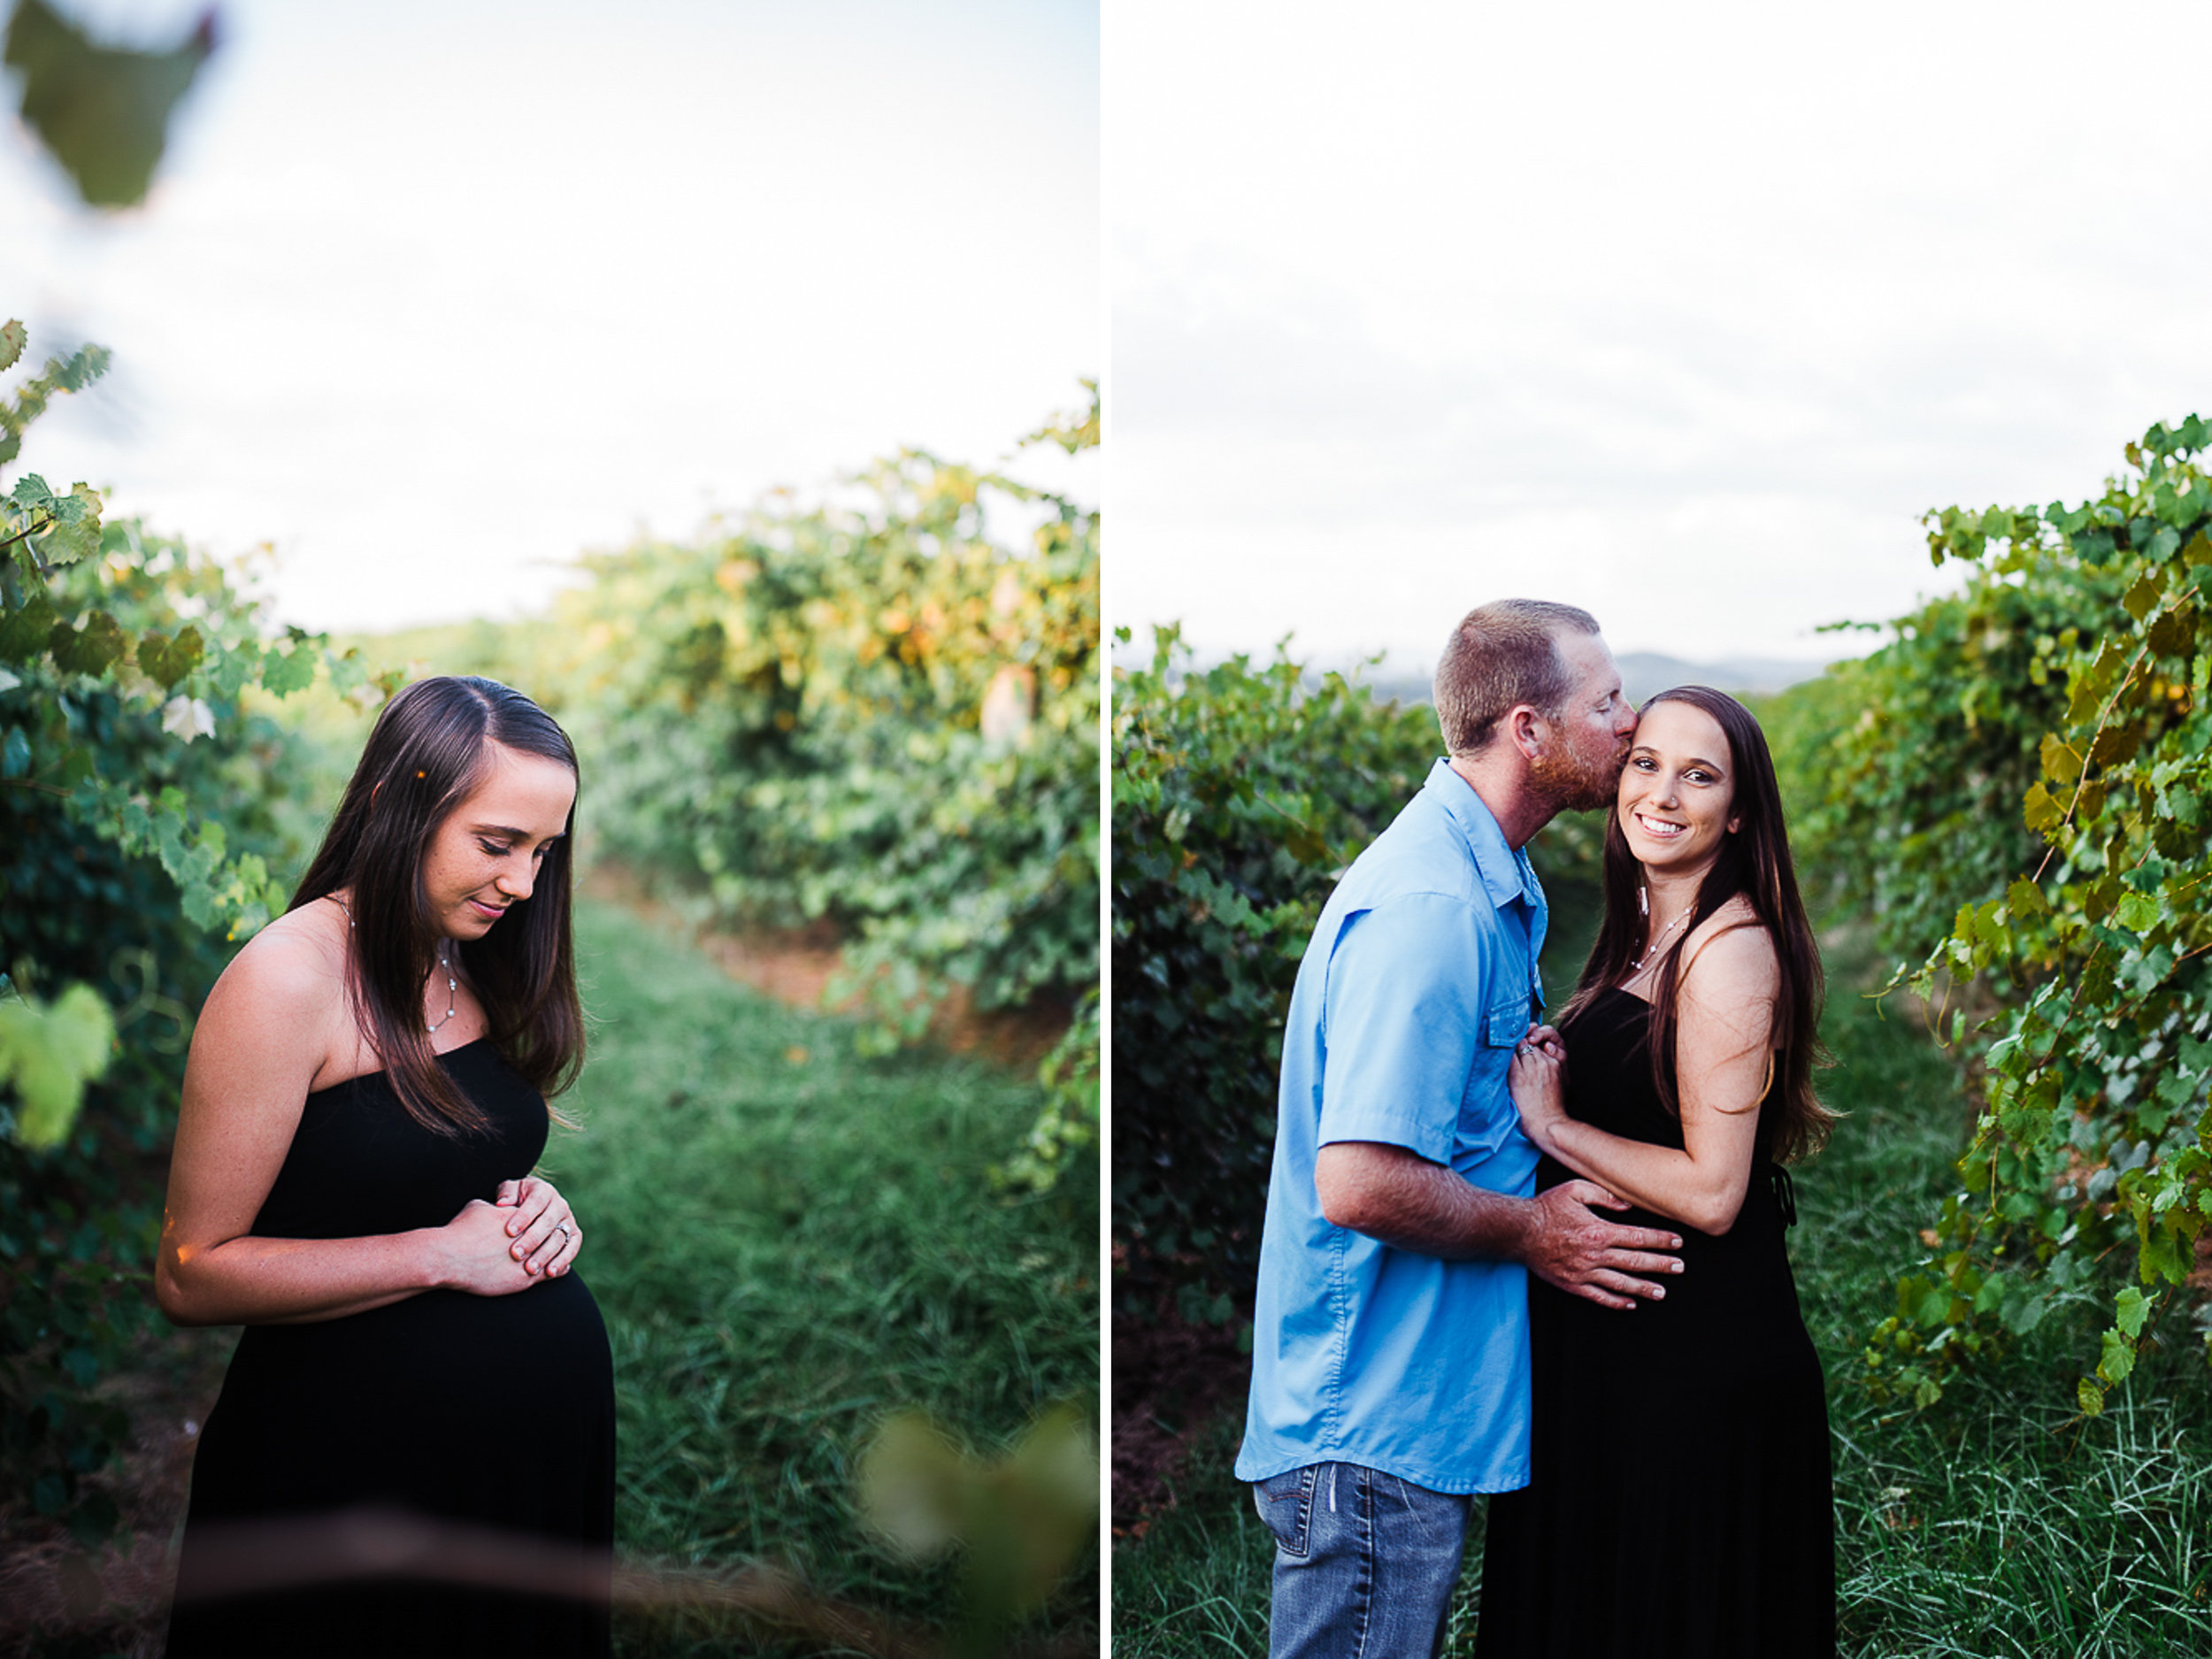 Baby Bump, Maternity Portraits, Mountain Maternity, Vineyard, River Maternity 09.jpg